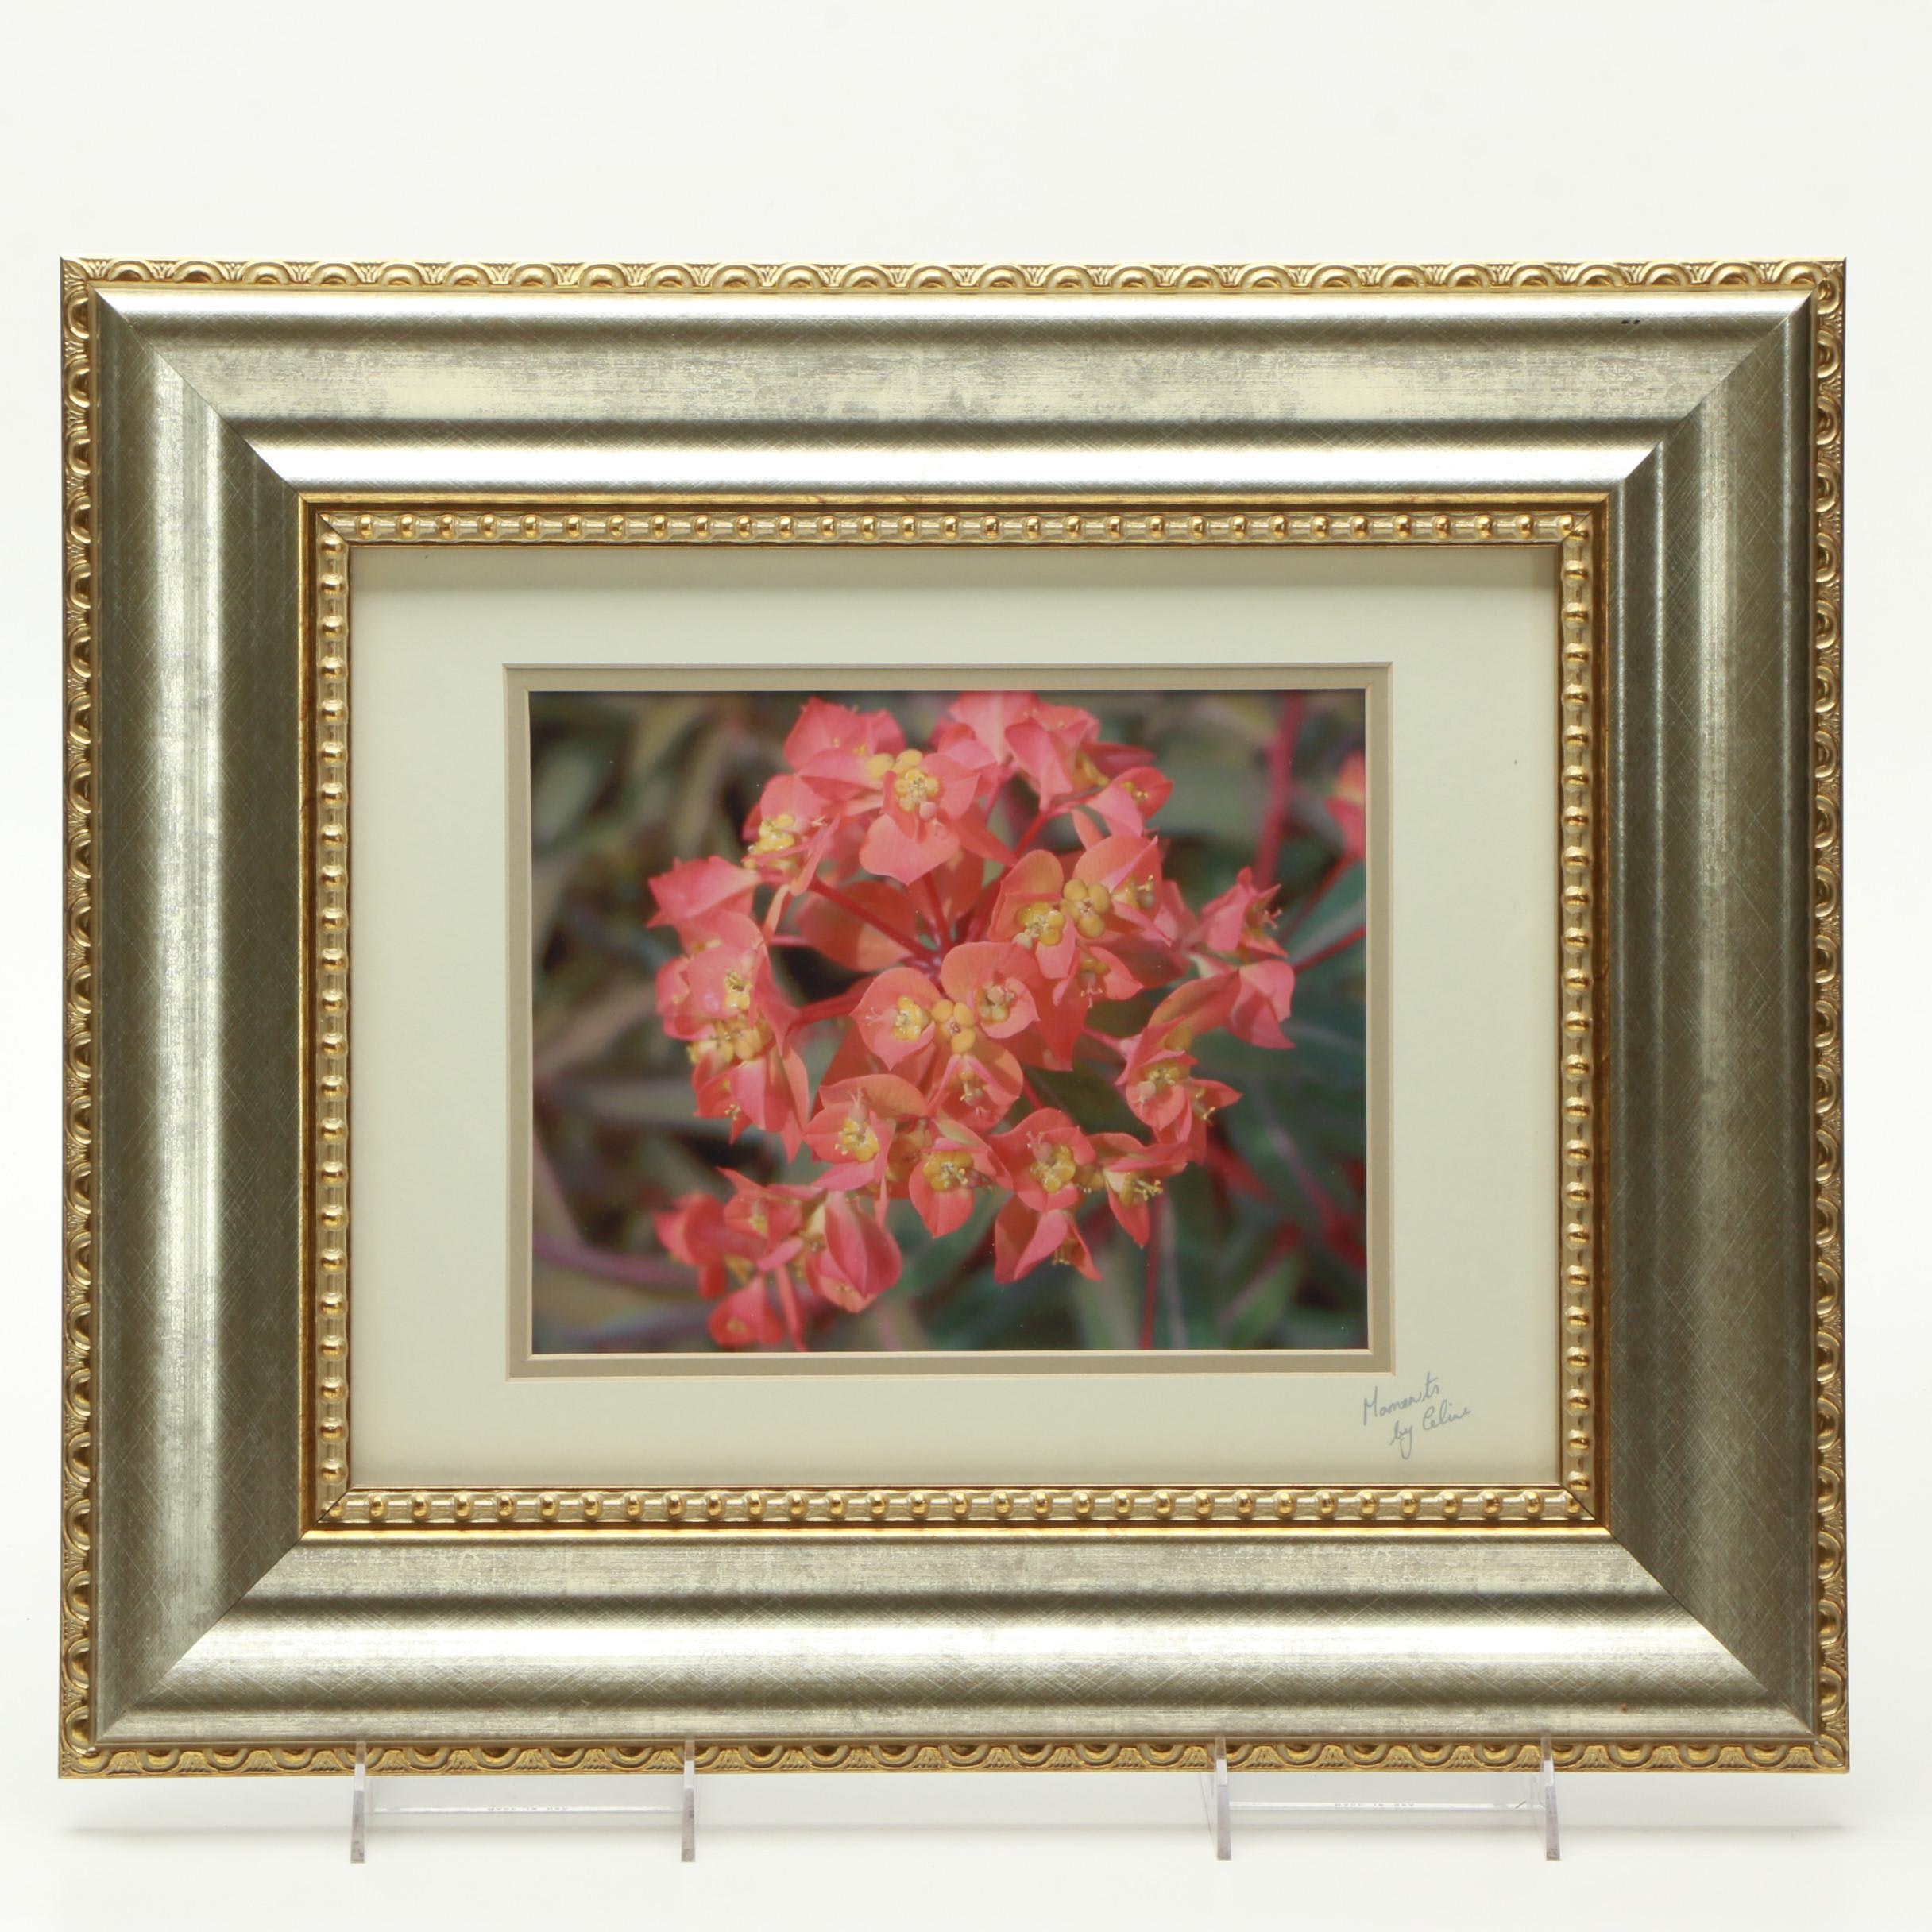 Giclee After a Photograph of a Flower